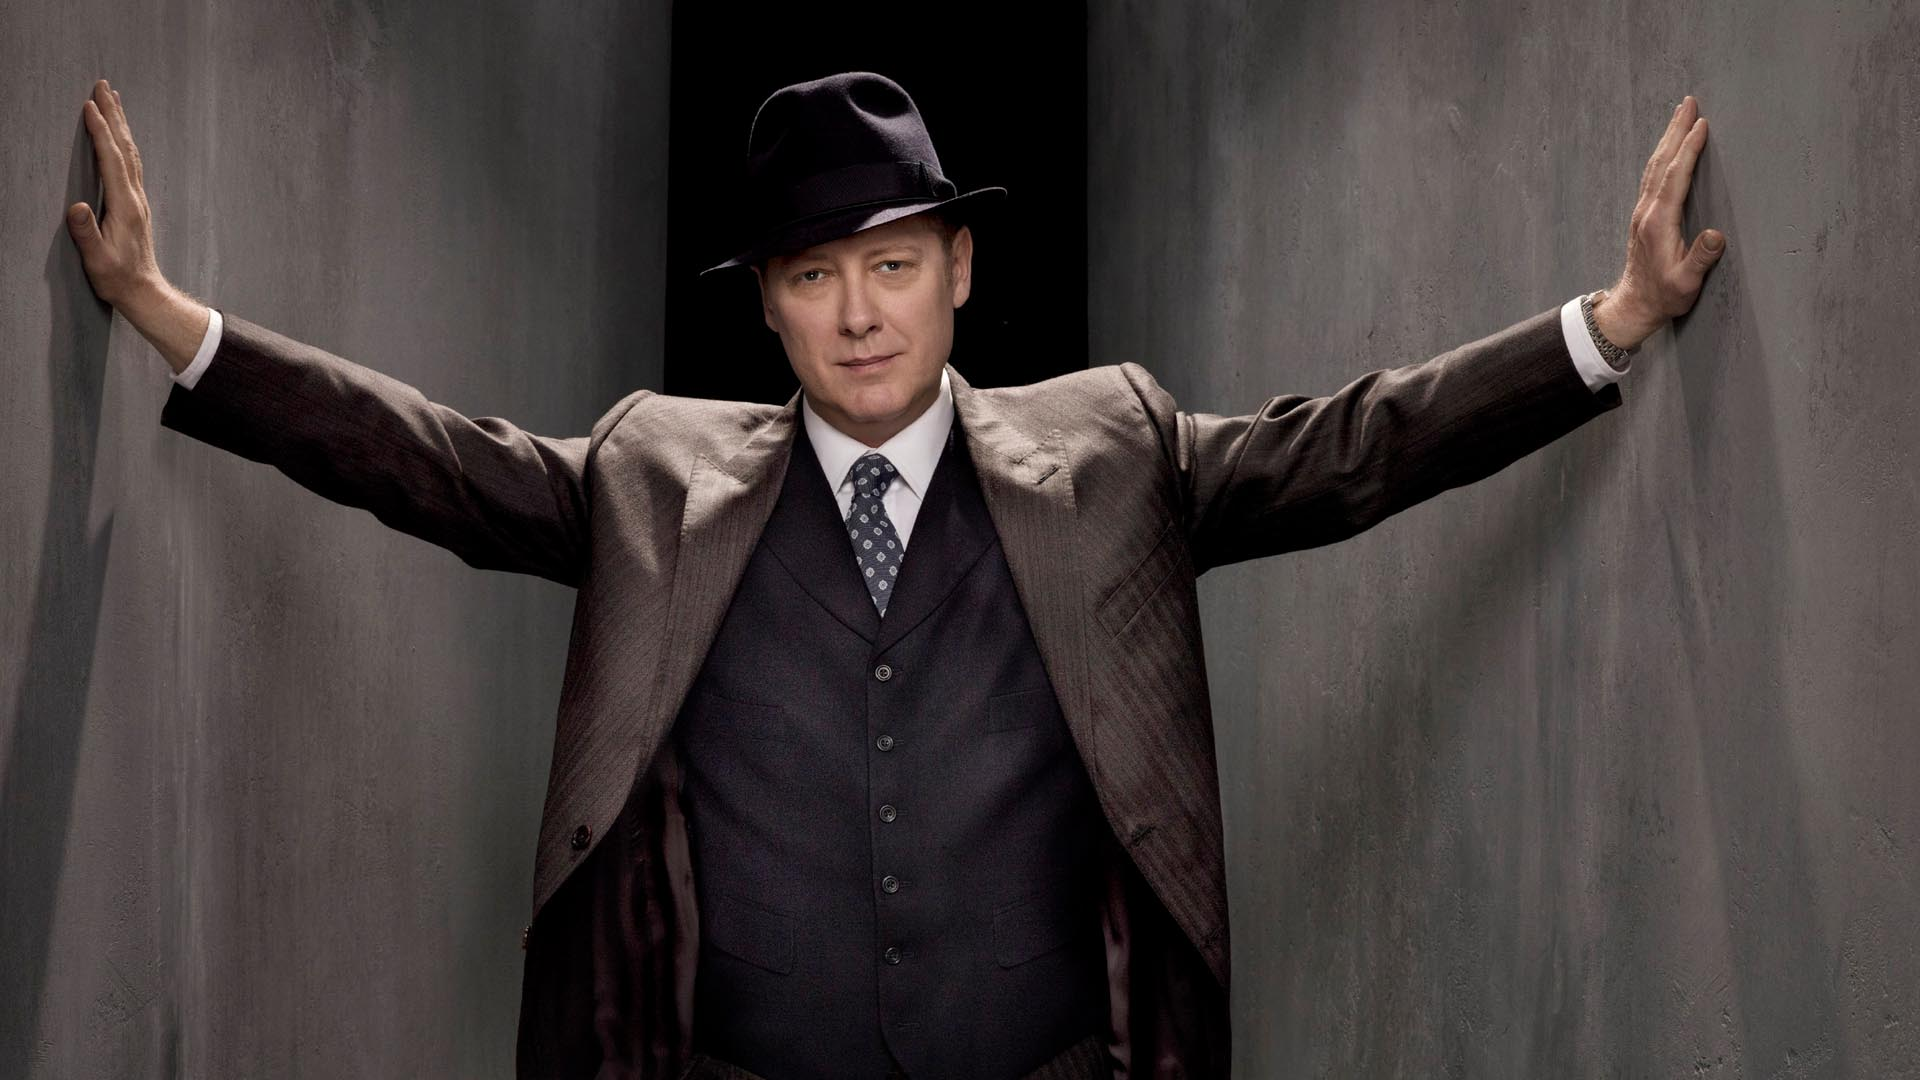 The Blacklist Wallpapers, Pictures, Images